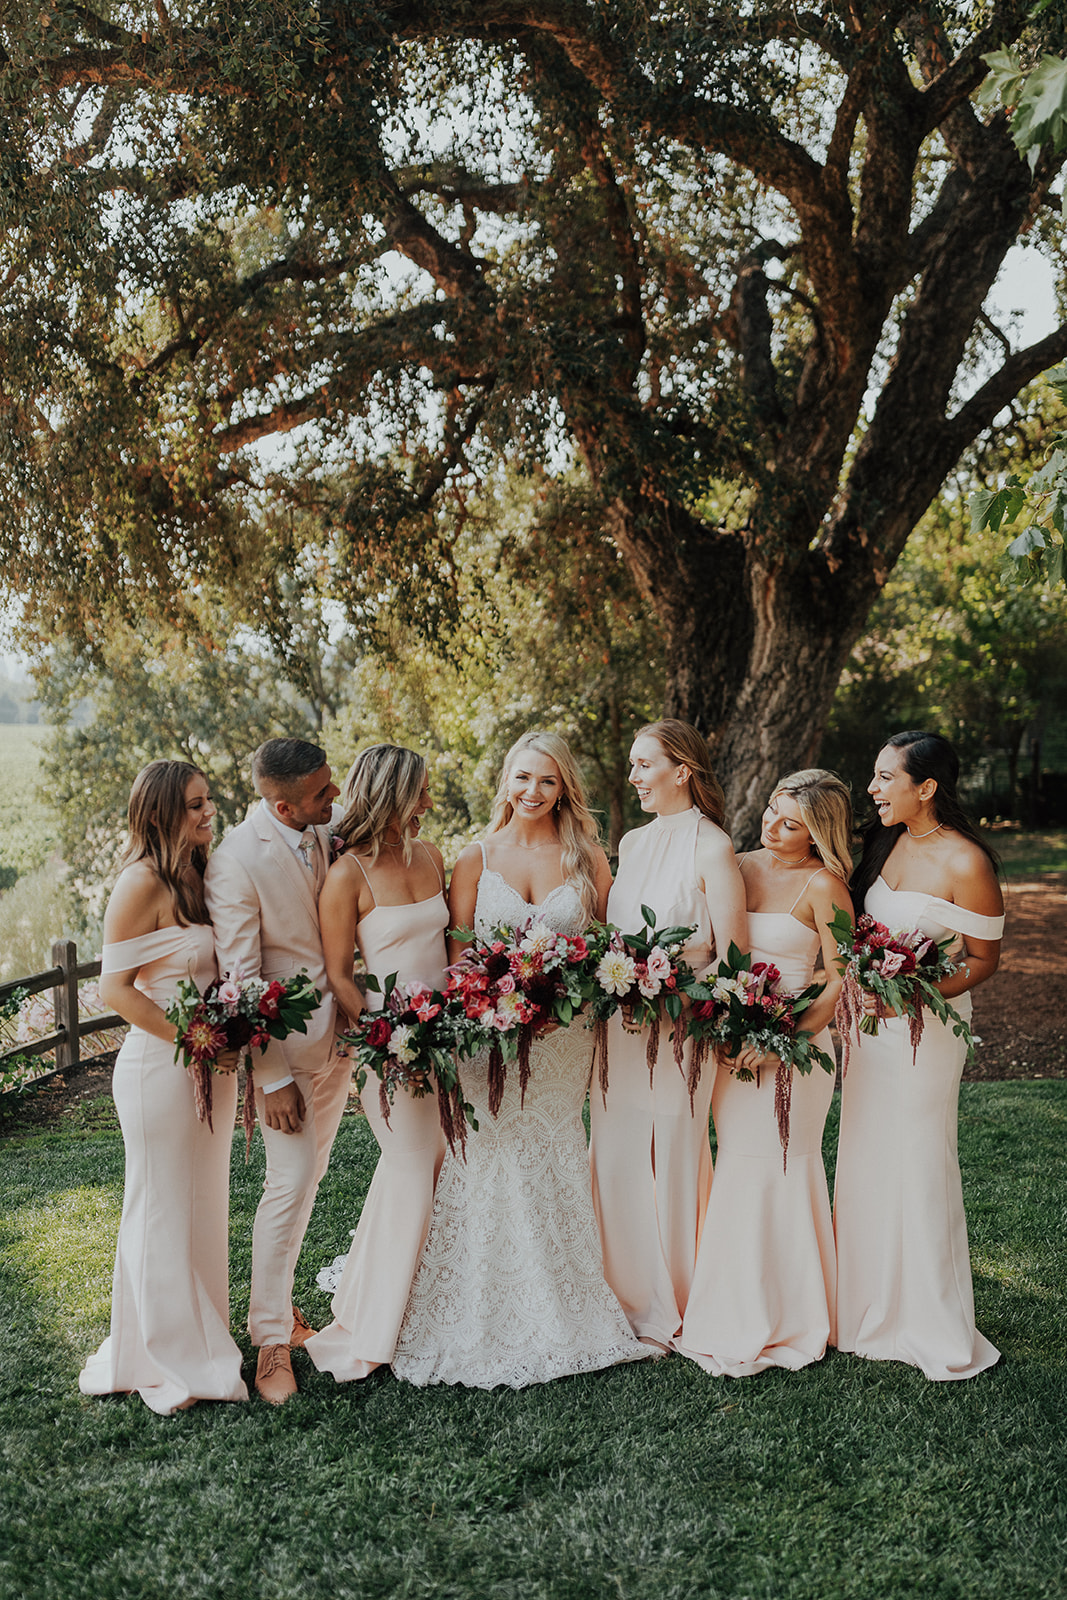 Bright and natural wedding party flowers by Venn Floral in Healdsburg at Ru's Farm photographed by Logan Cole.